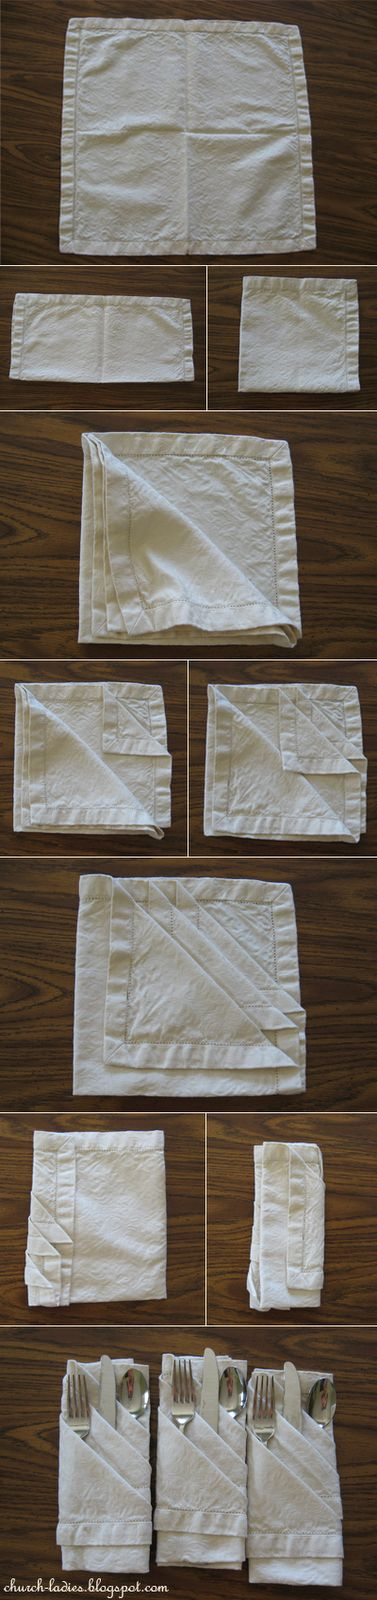 Folded napkins.